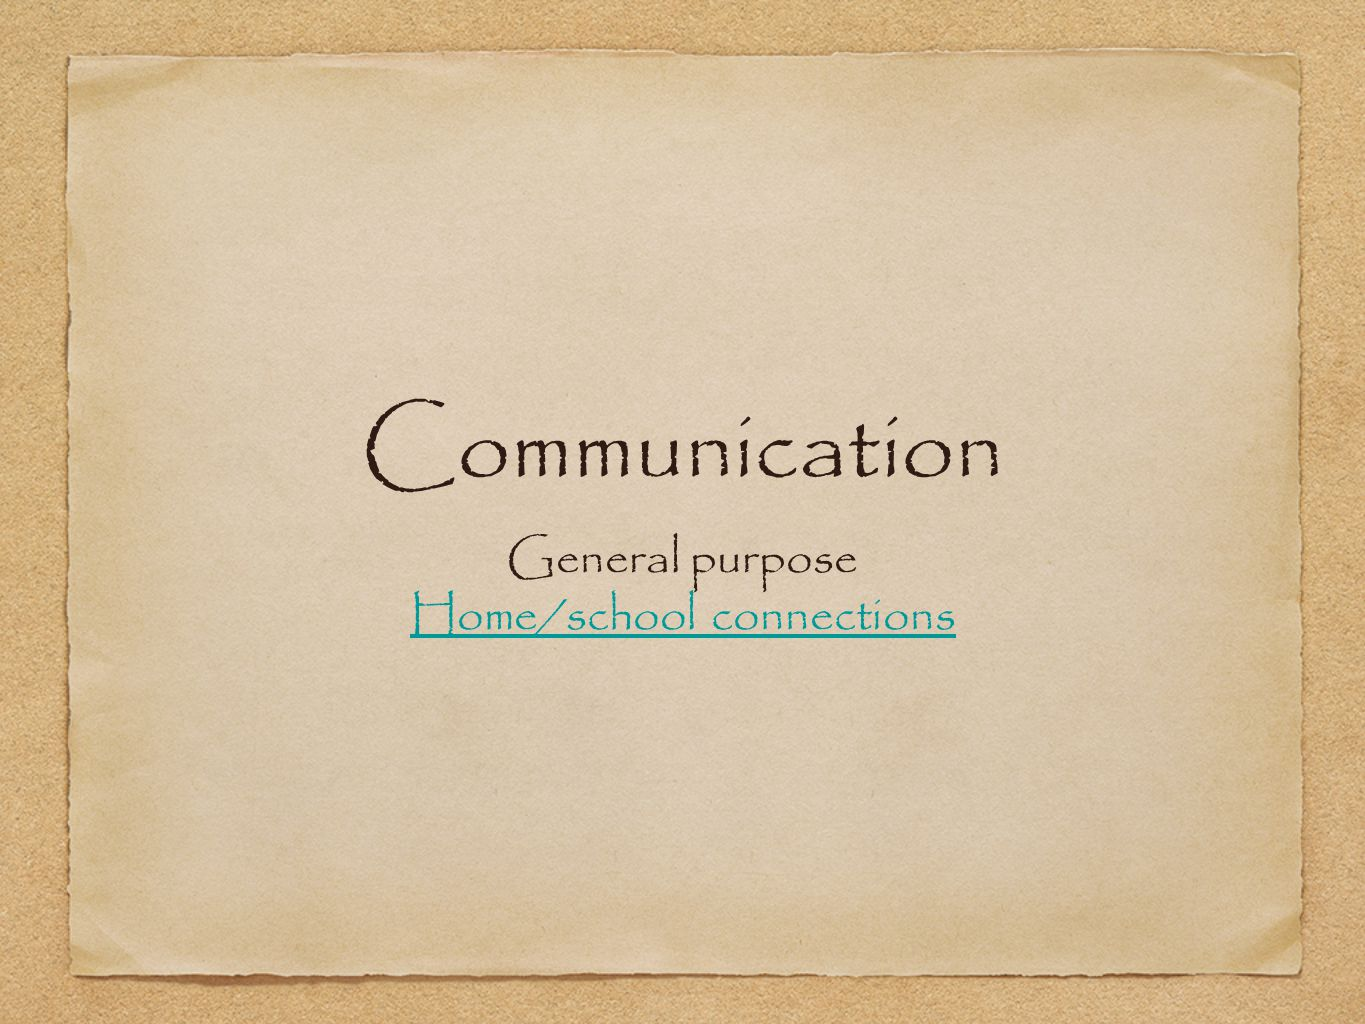 Communication General purpose Home/school connections